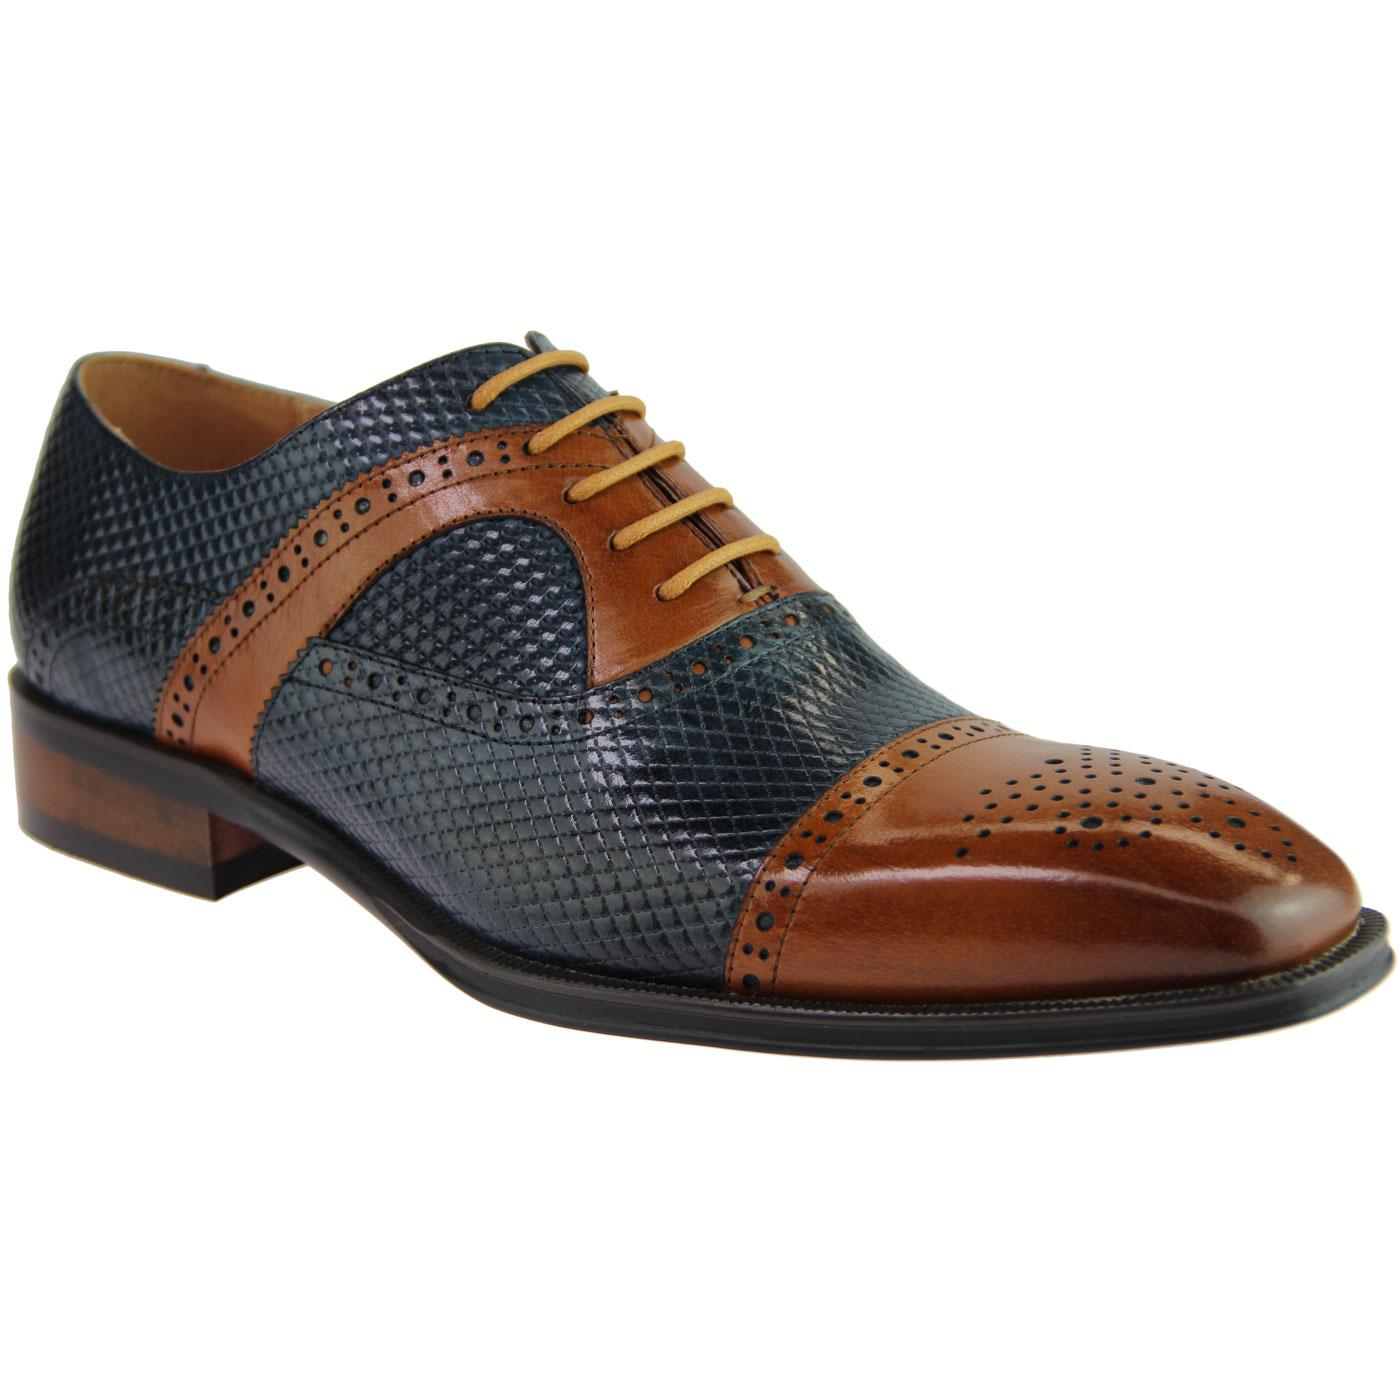 Montegro SERGIO DULETTI Lattice Stamp Brogues NAVY